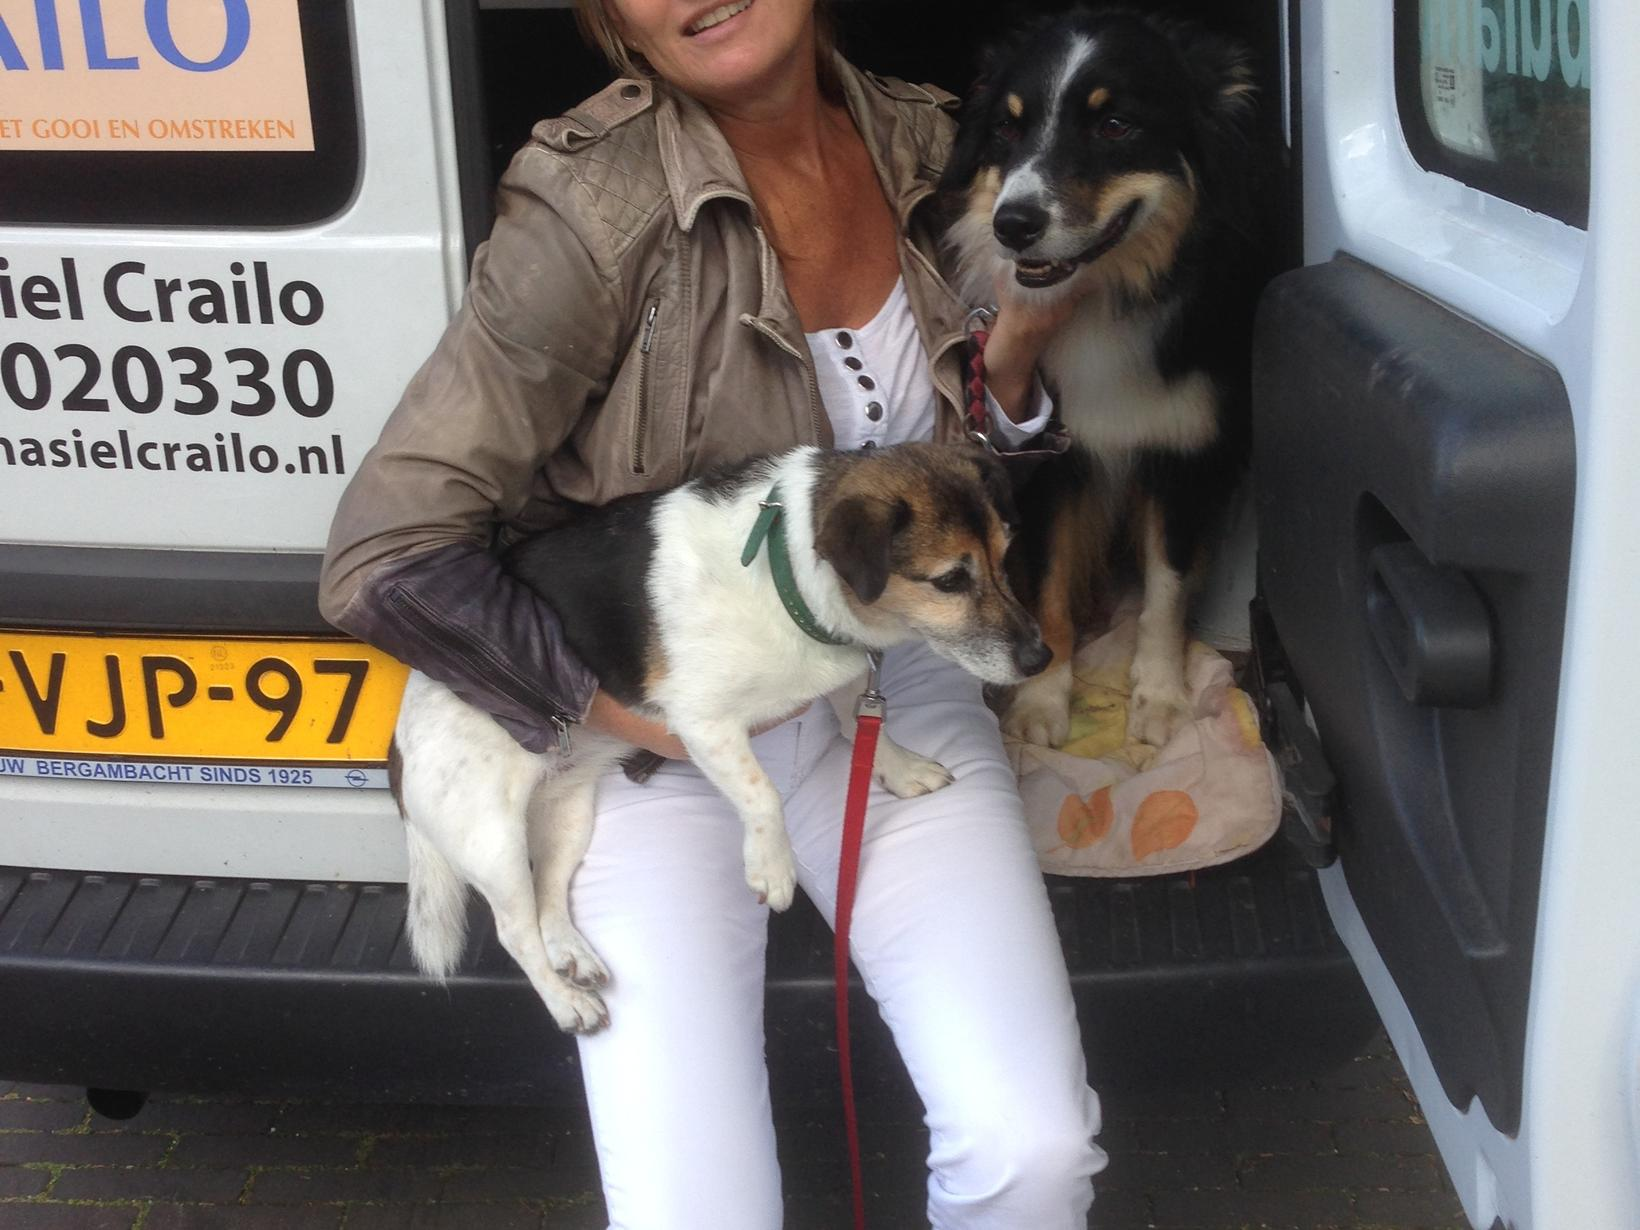 Frederike from Amsterdam, Netherlands